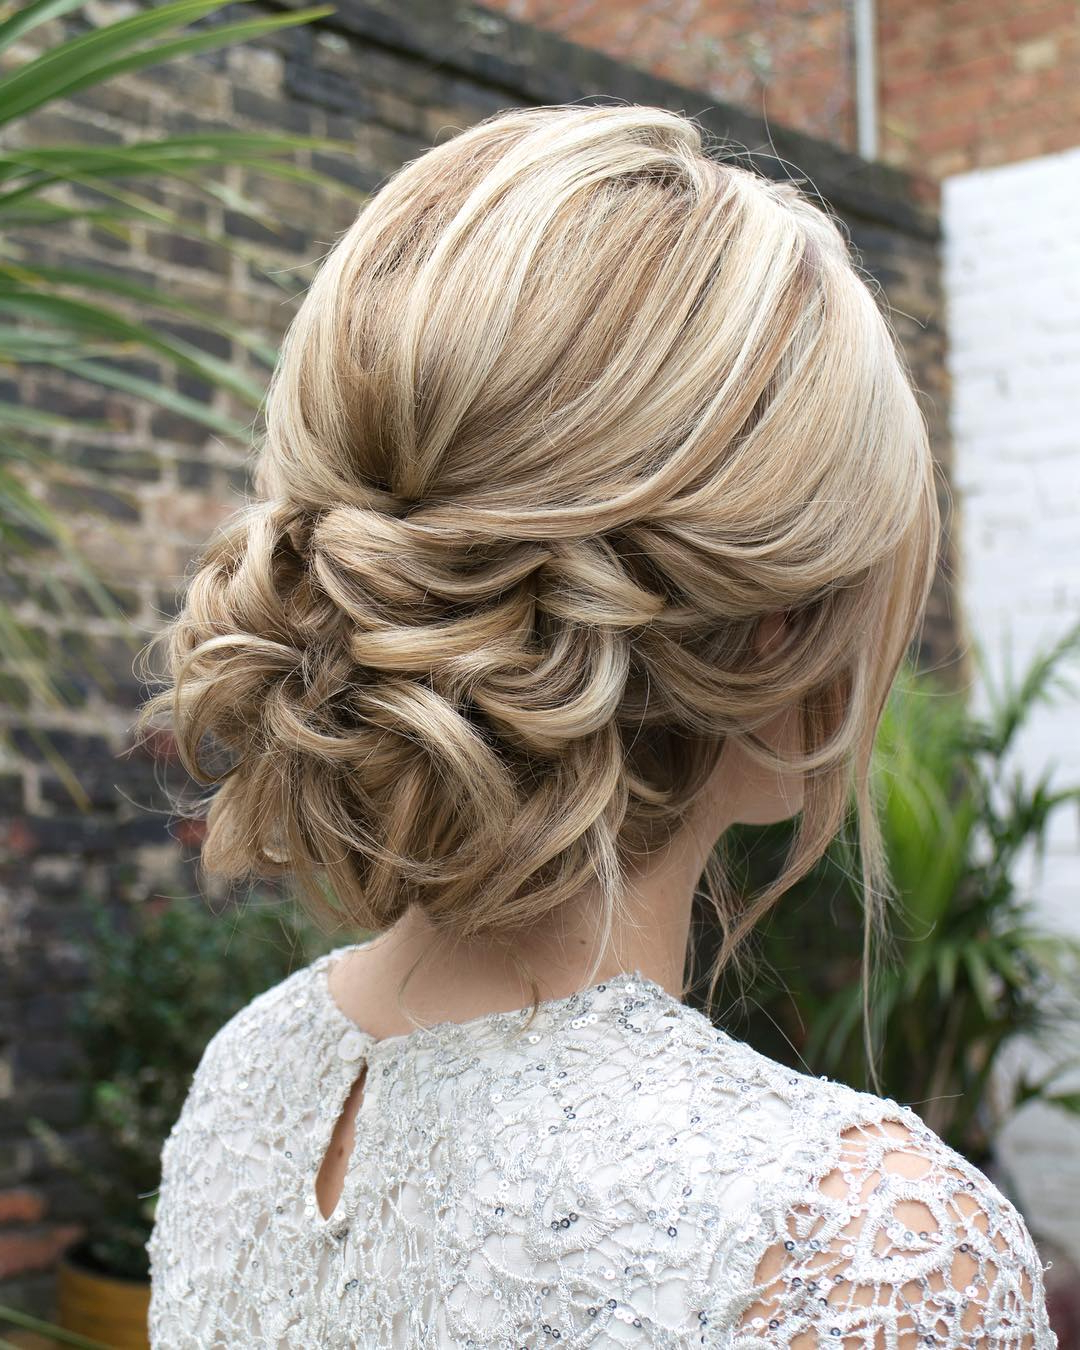 20 Ideas of Volumized Low Chignon Prom Hairstyles